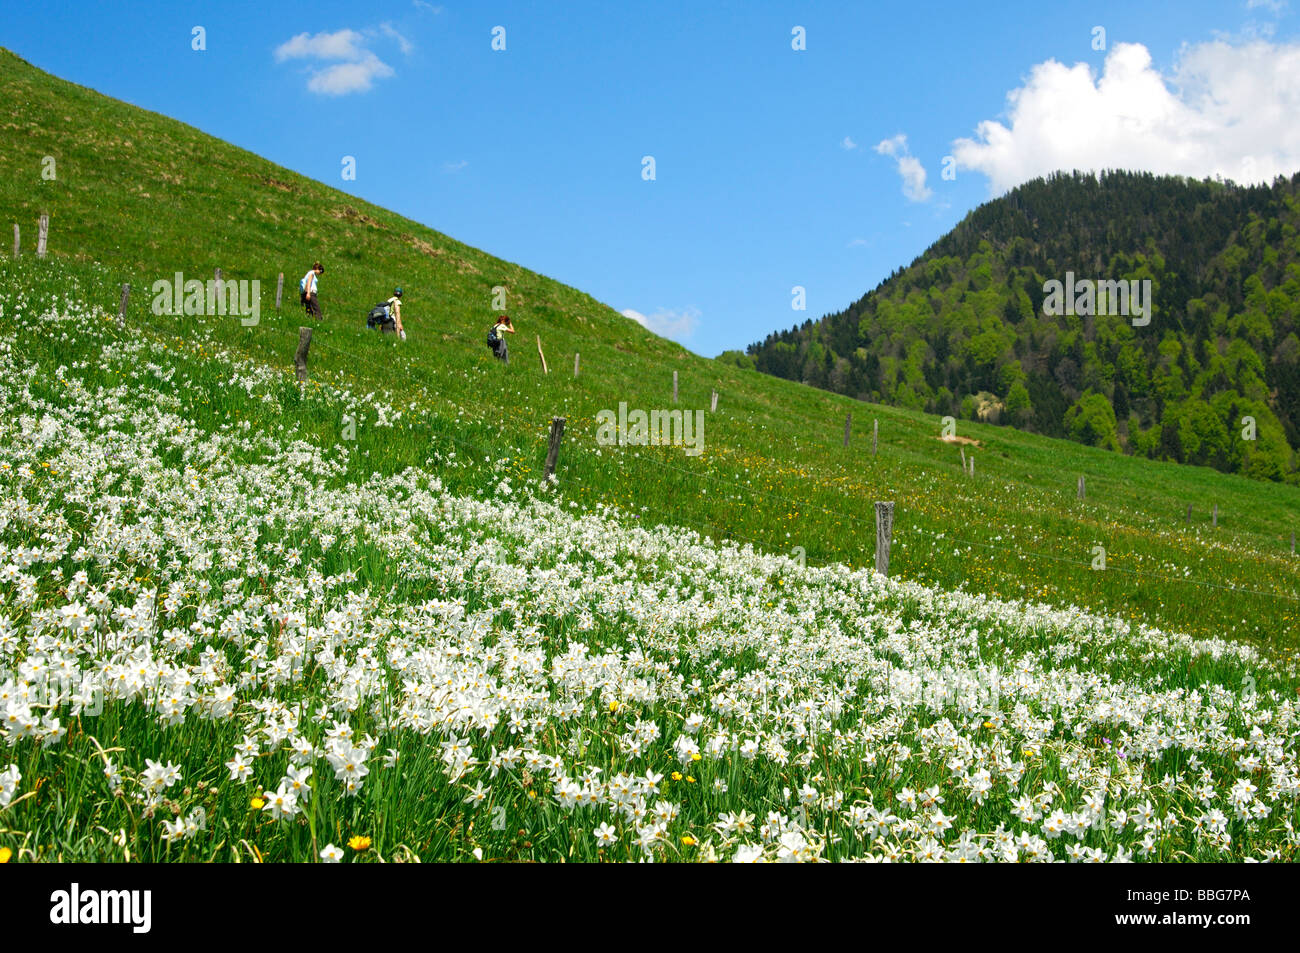 Hikers passing a mountain meadow in spring with blooming white narcissus, Montreux-daffodil (Narcissus poeticus), Stock Photo